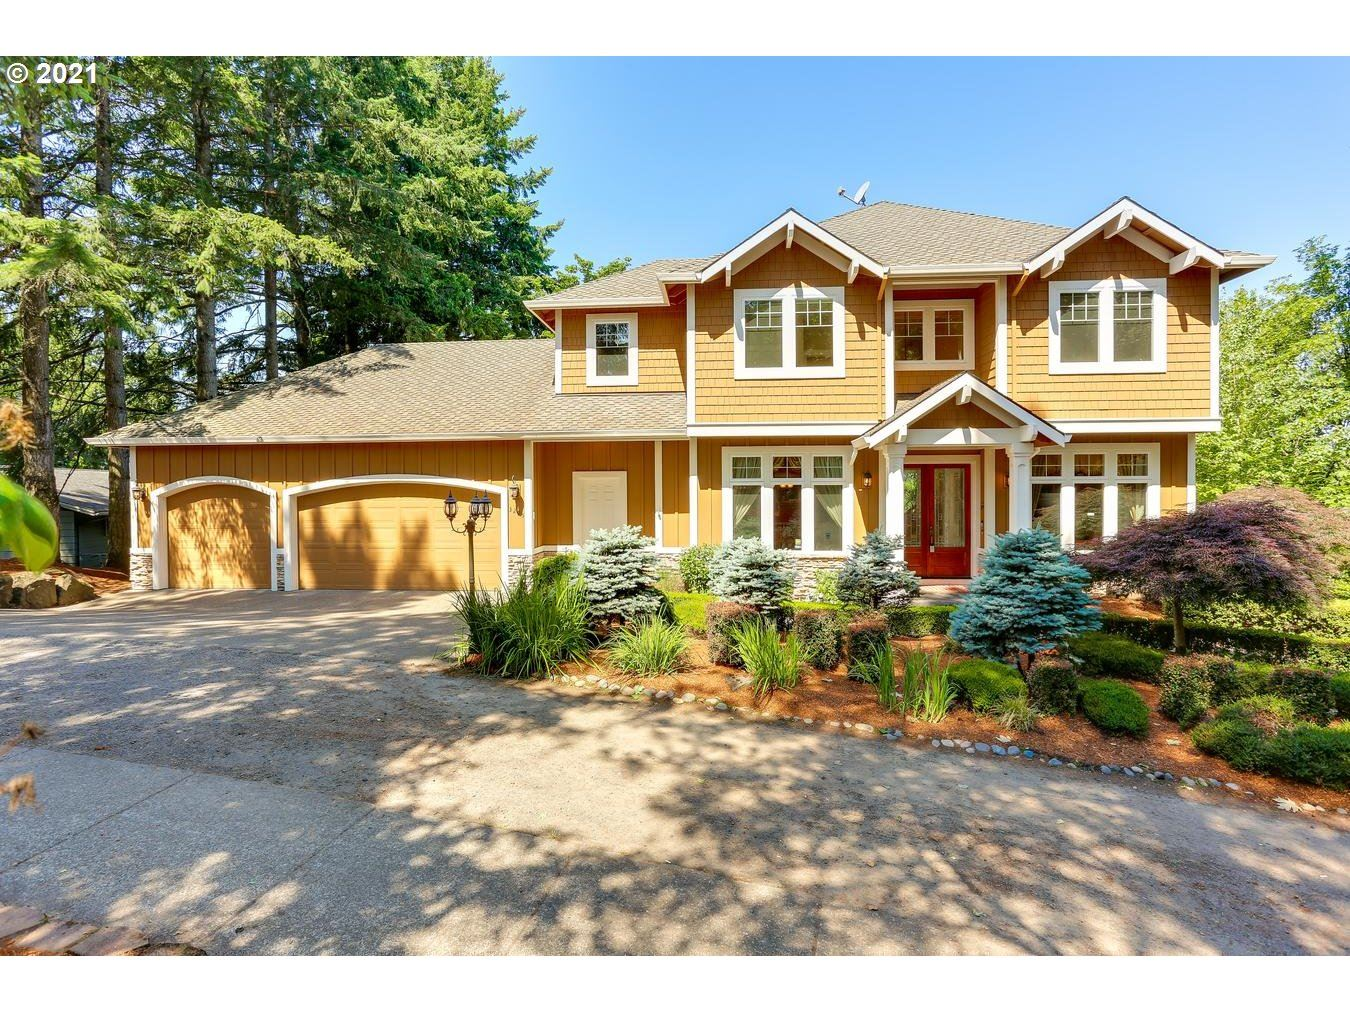 3295 NW 114TH TER, Portland, OR 97229 - MLS#: 21071200